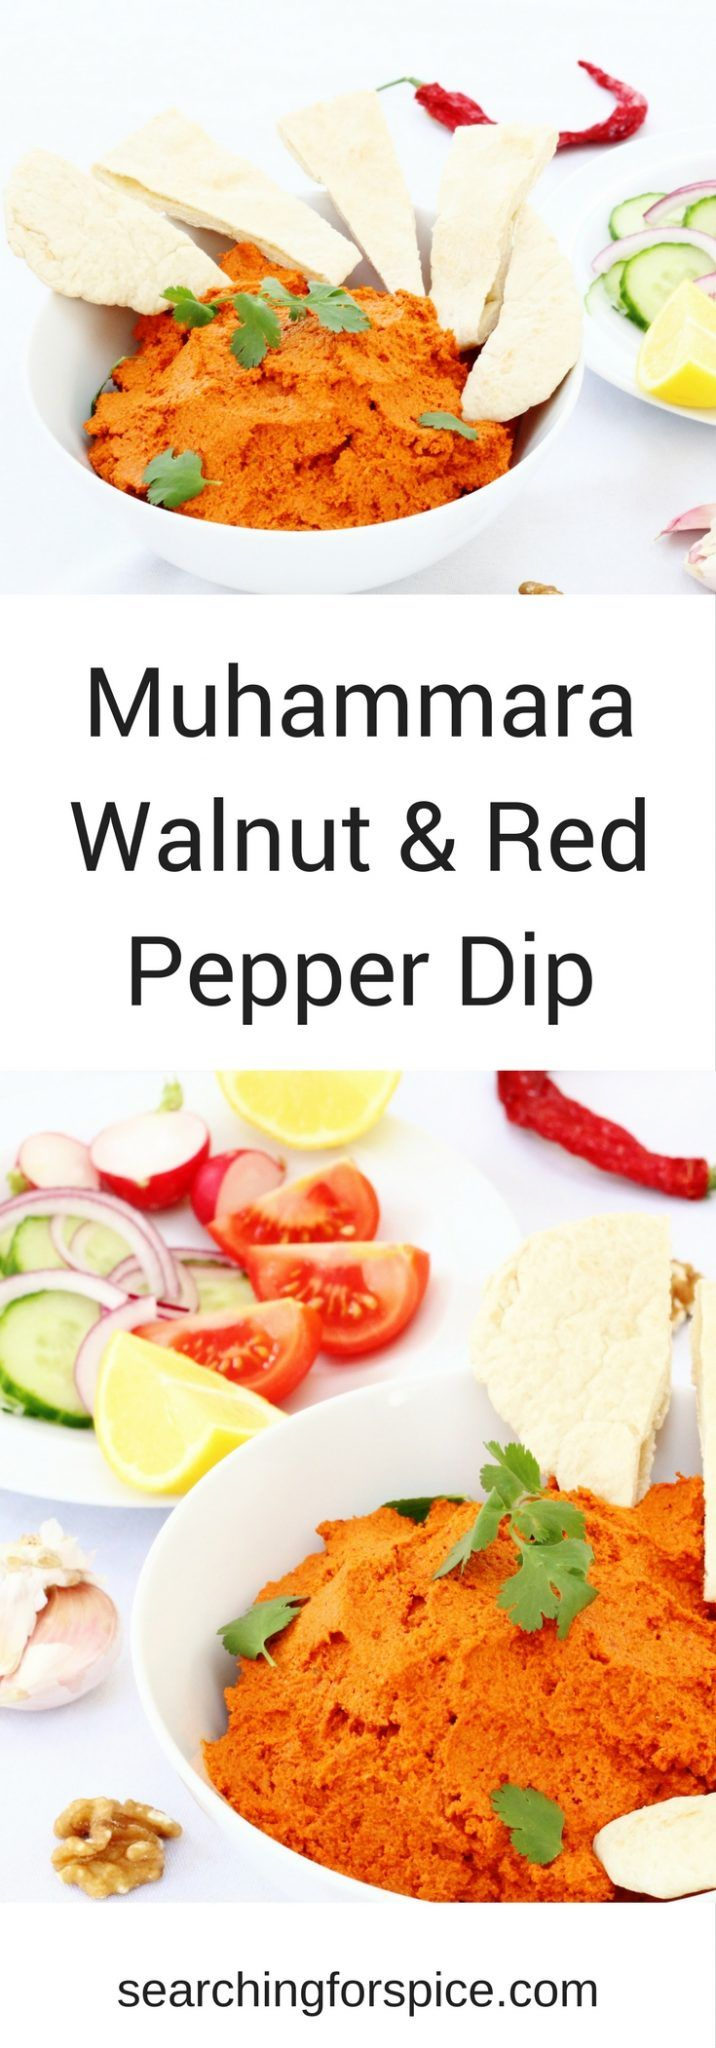 This Muhammara walnut and red pepper dip recipe makes a great alternative to houmous. It's lemony spicy and nutty and a big batch keeps well for a few days in the fridge #Muhammara #dips #Sidedish #MiddleEasternFood